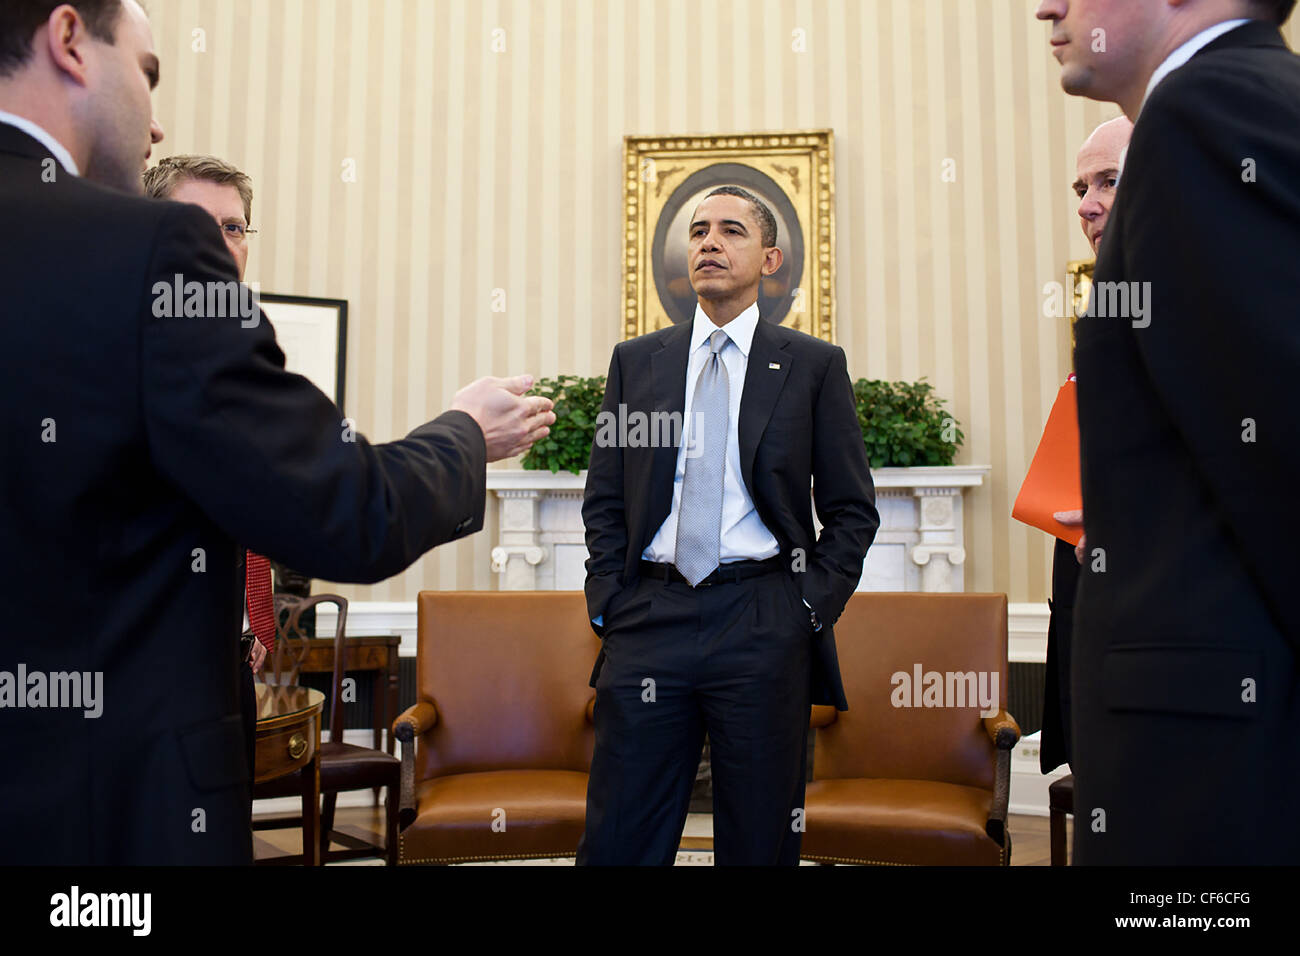 President Barack Obama talks with senior advisors following a meeting in the Oval Office, March 3, 2011 in Washington, - Stock Image